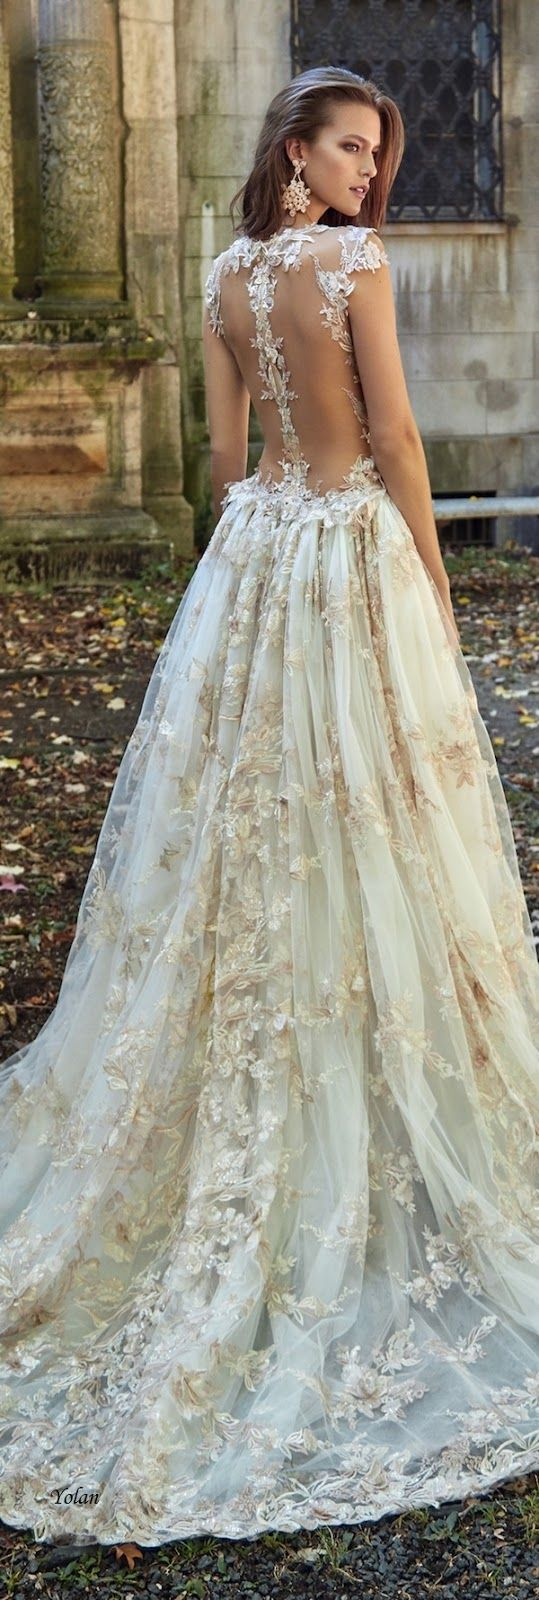 Ross wedding dress  Pin by Ross Bustamante on vestidos  Pinterest  Wedding dress